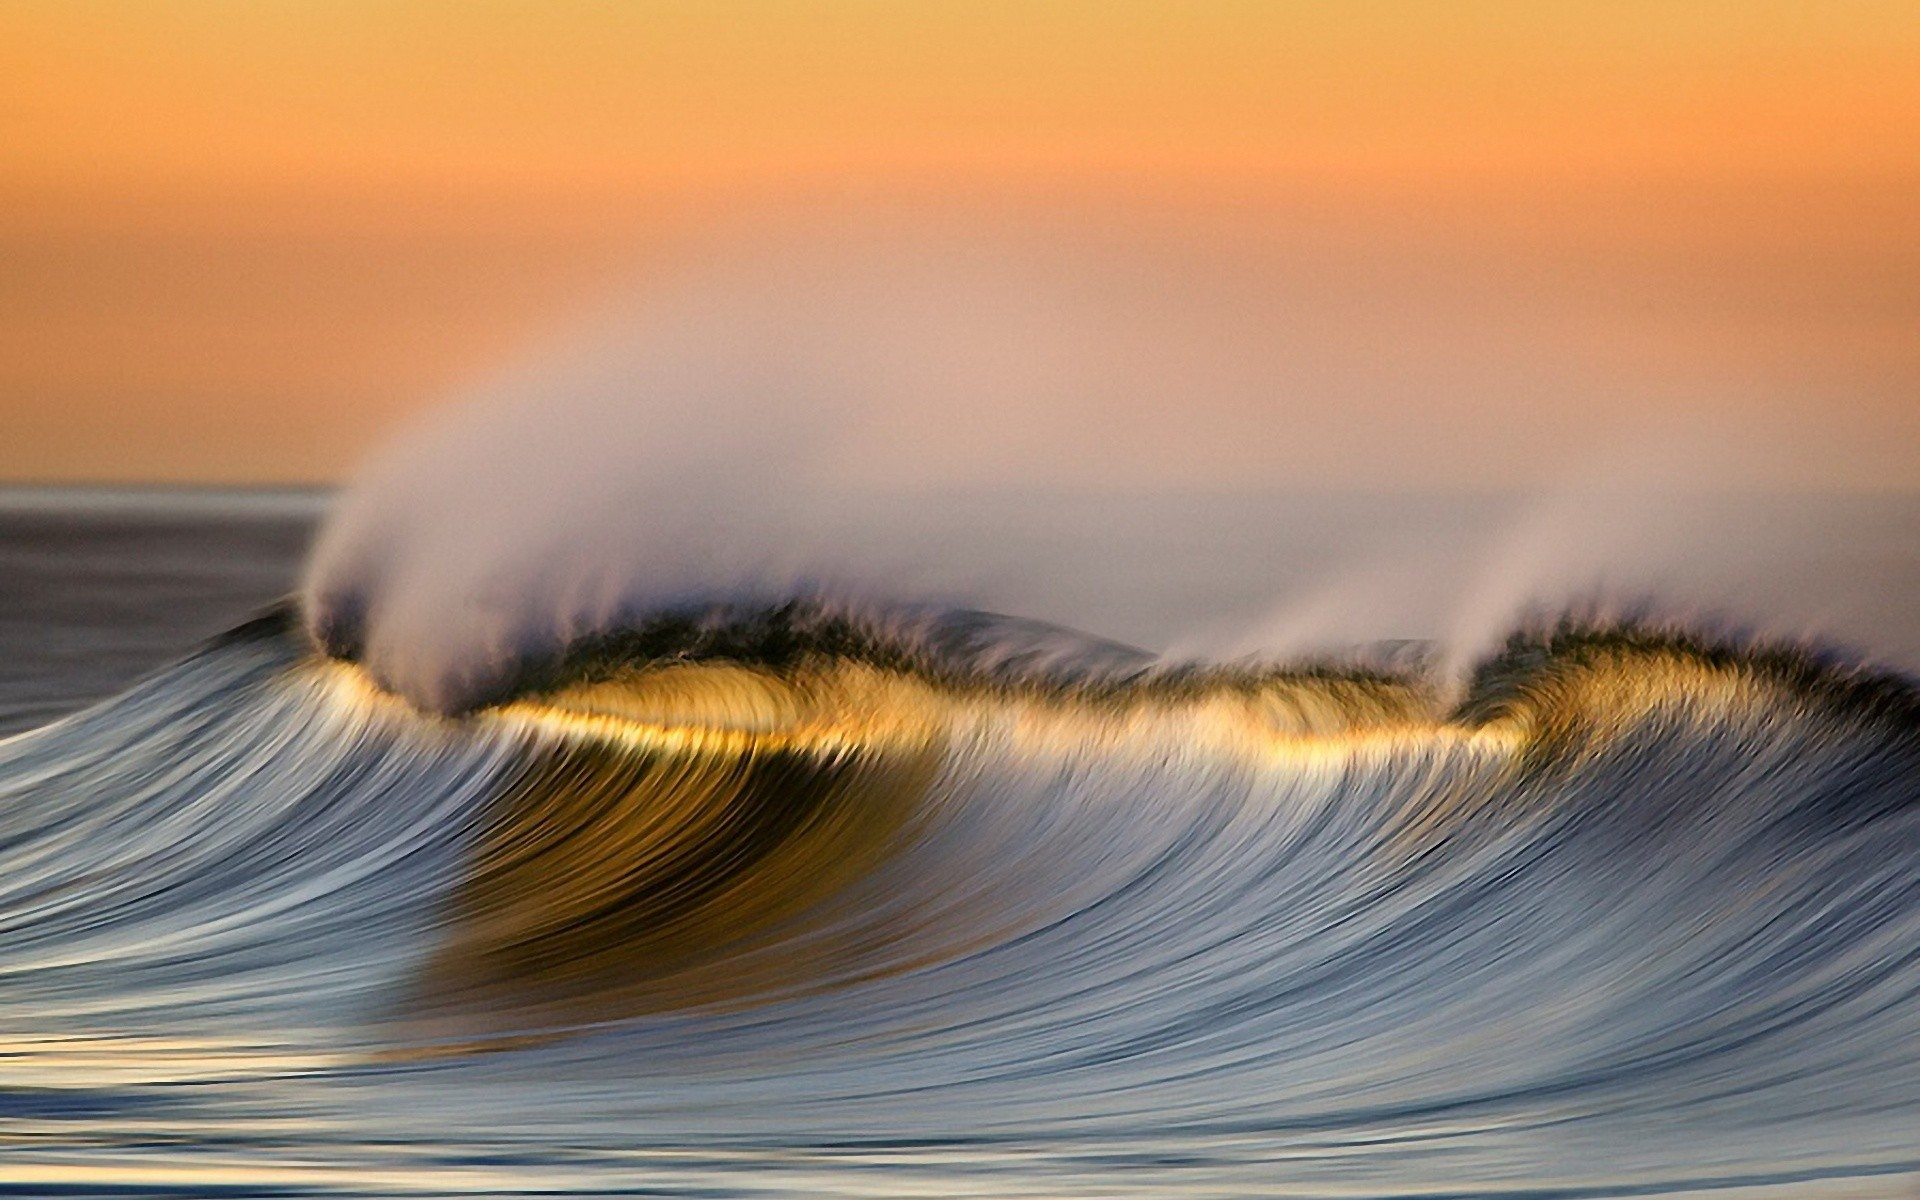 daily wallpaper: wave | i like to waste my time